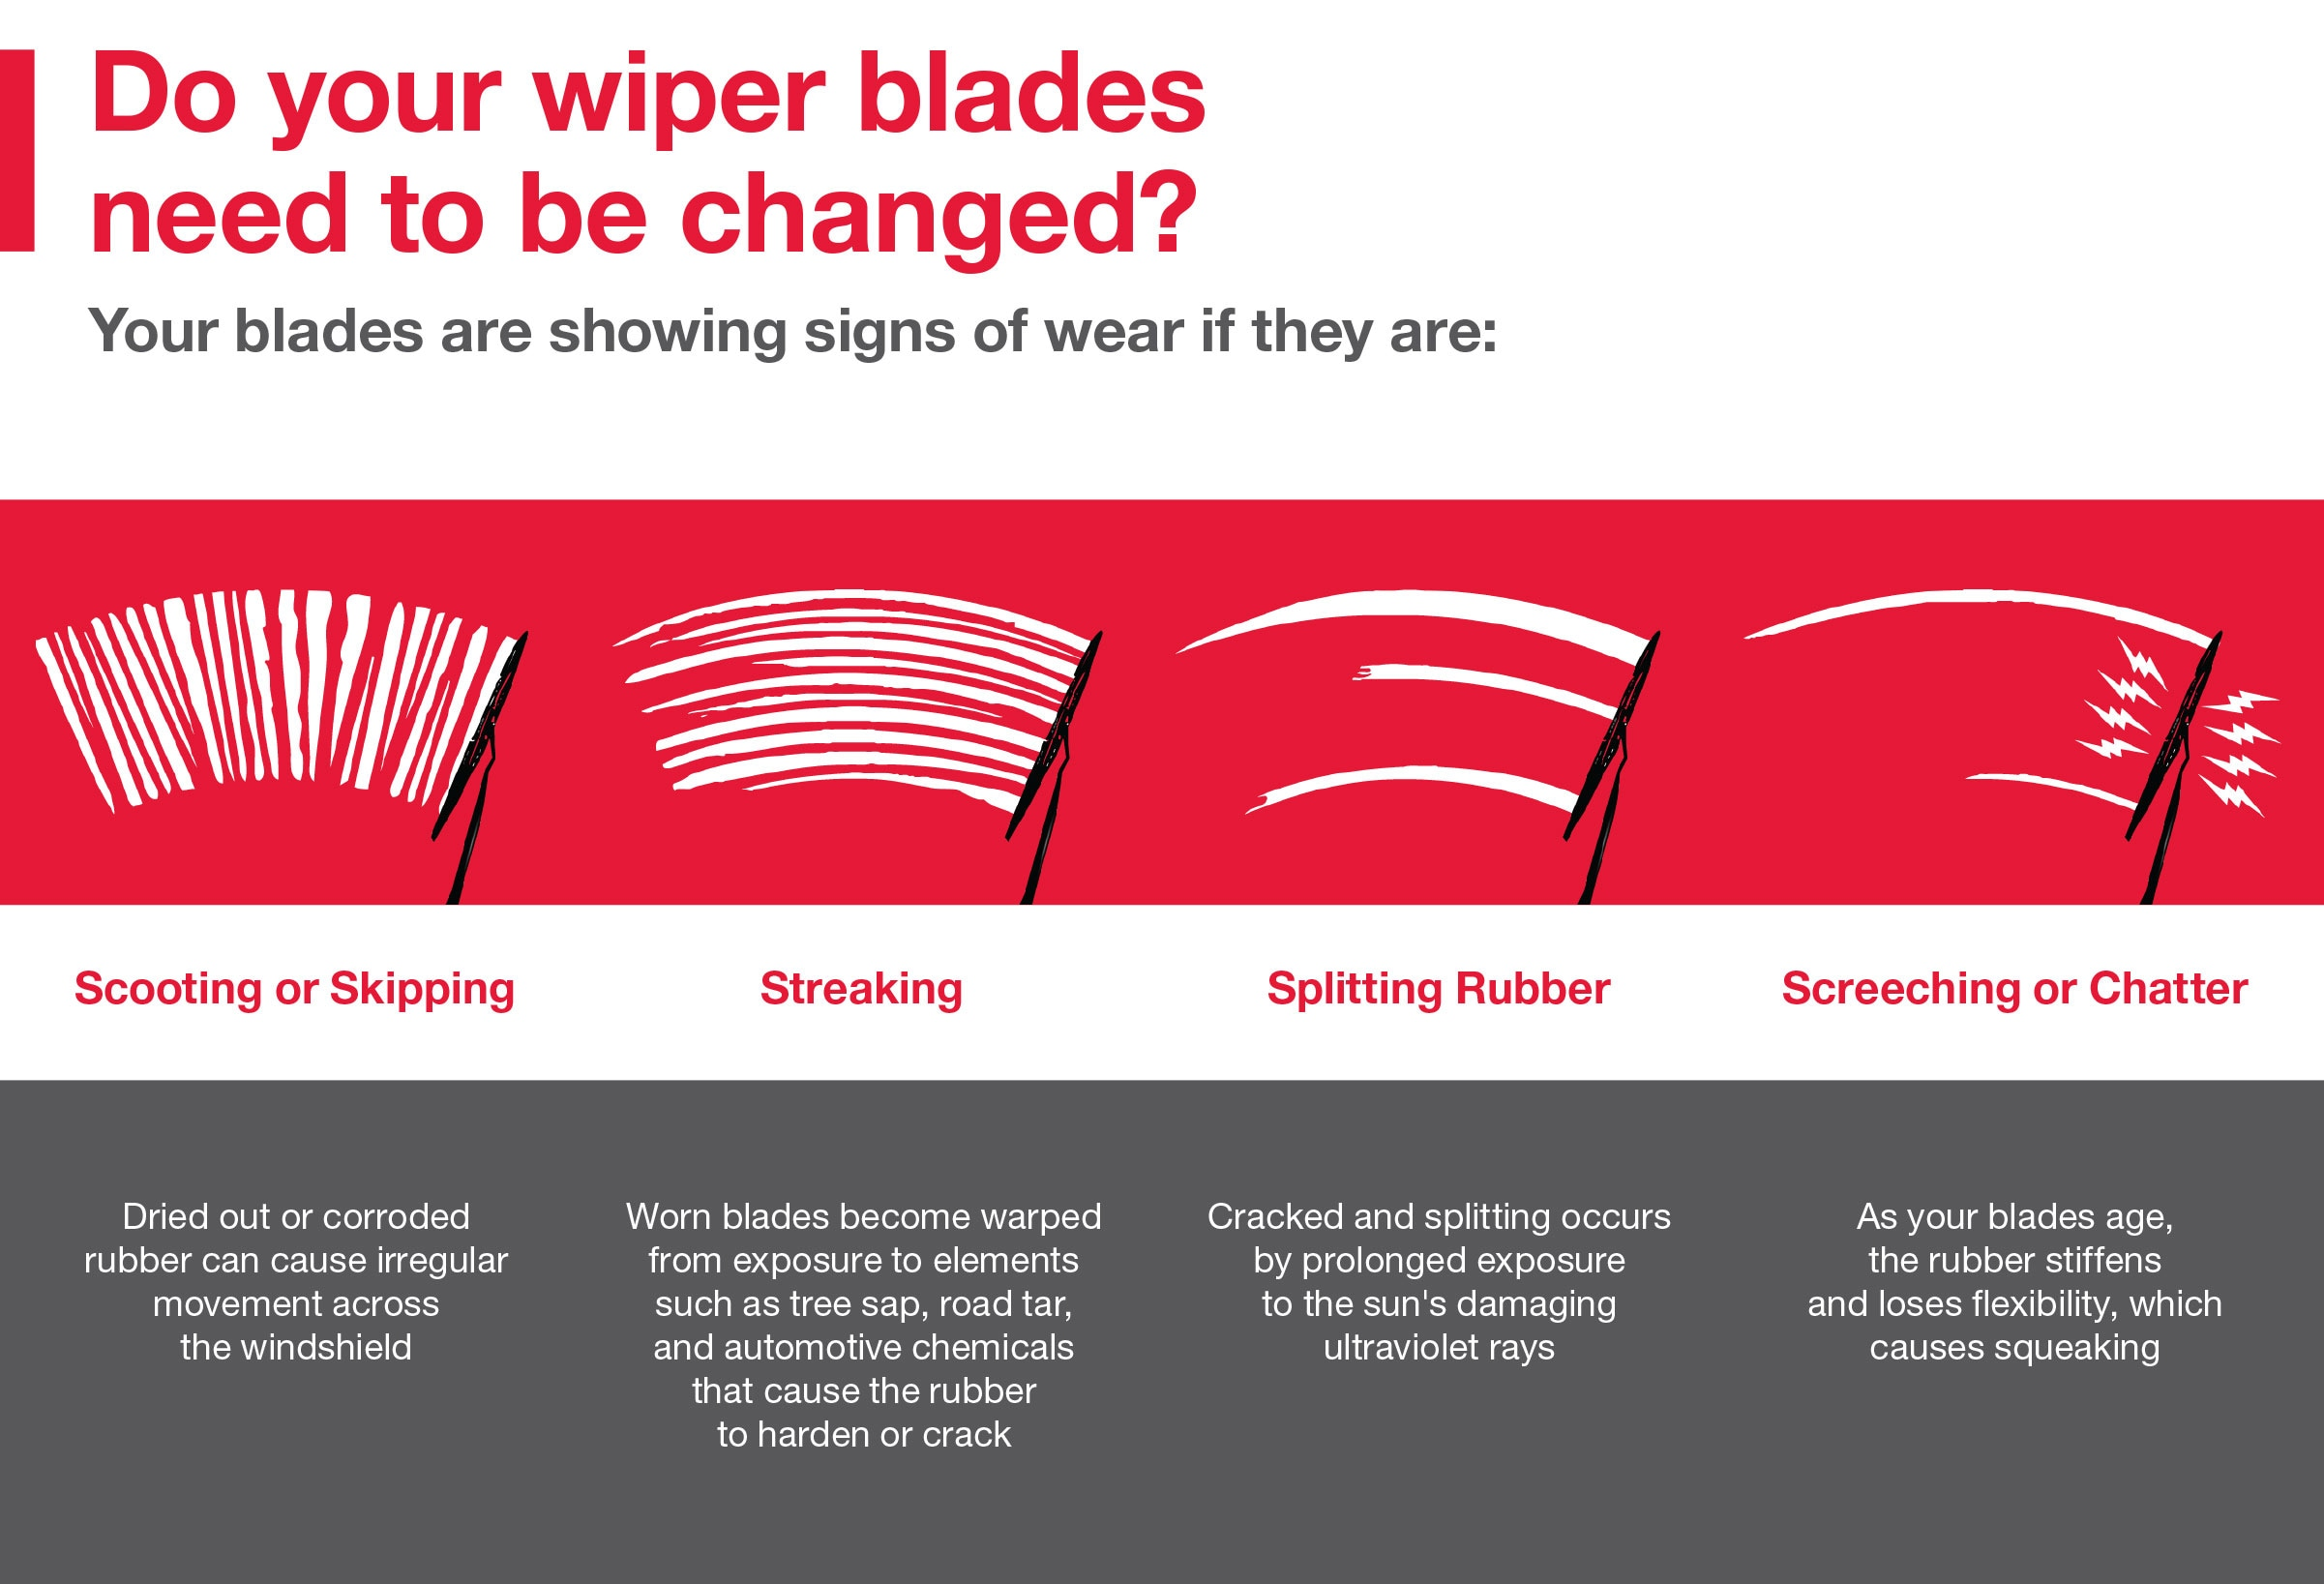 Do your wiper blades need to be changed? Call your local dealer for more info.